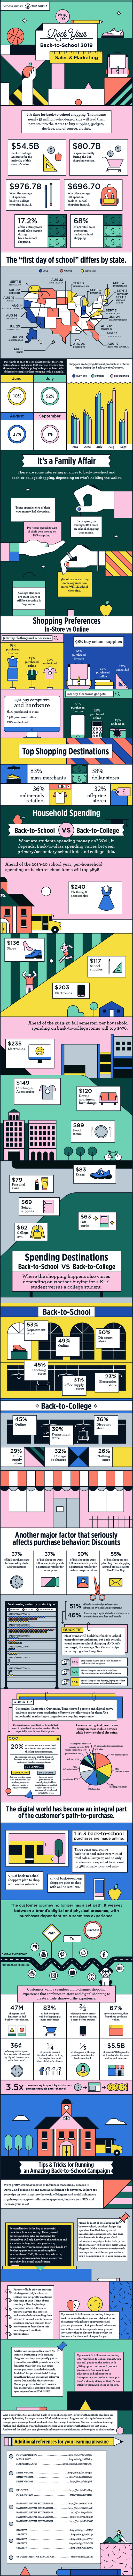 2019 Back-to-School Marketing Campaigns: Stats & Strategies 1